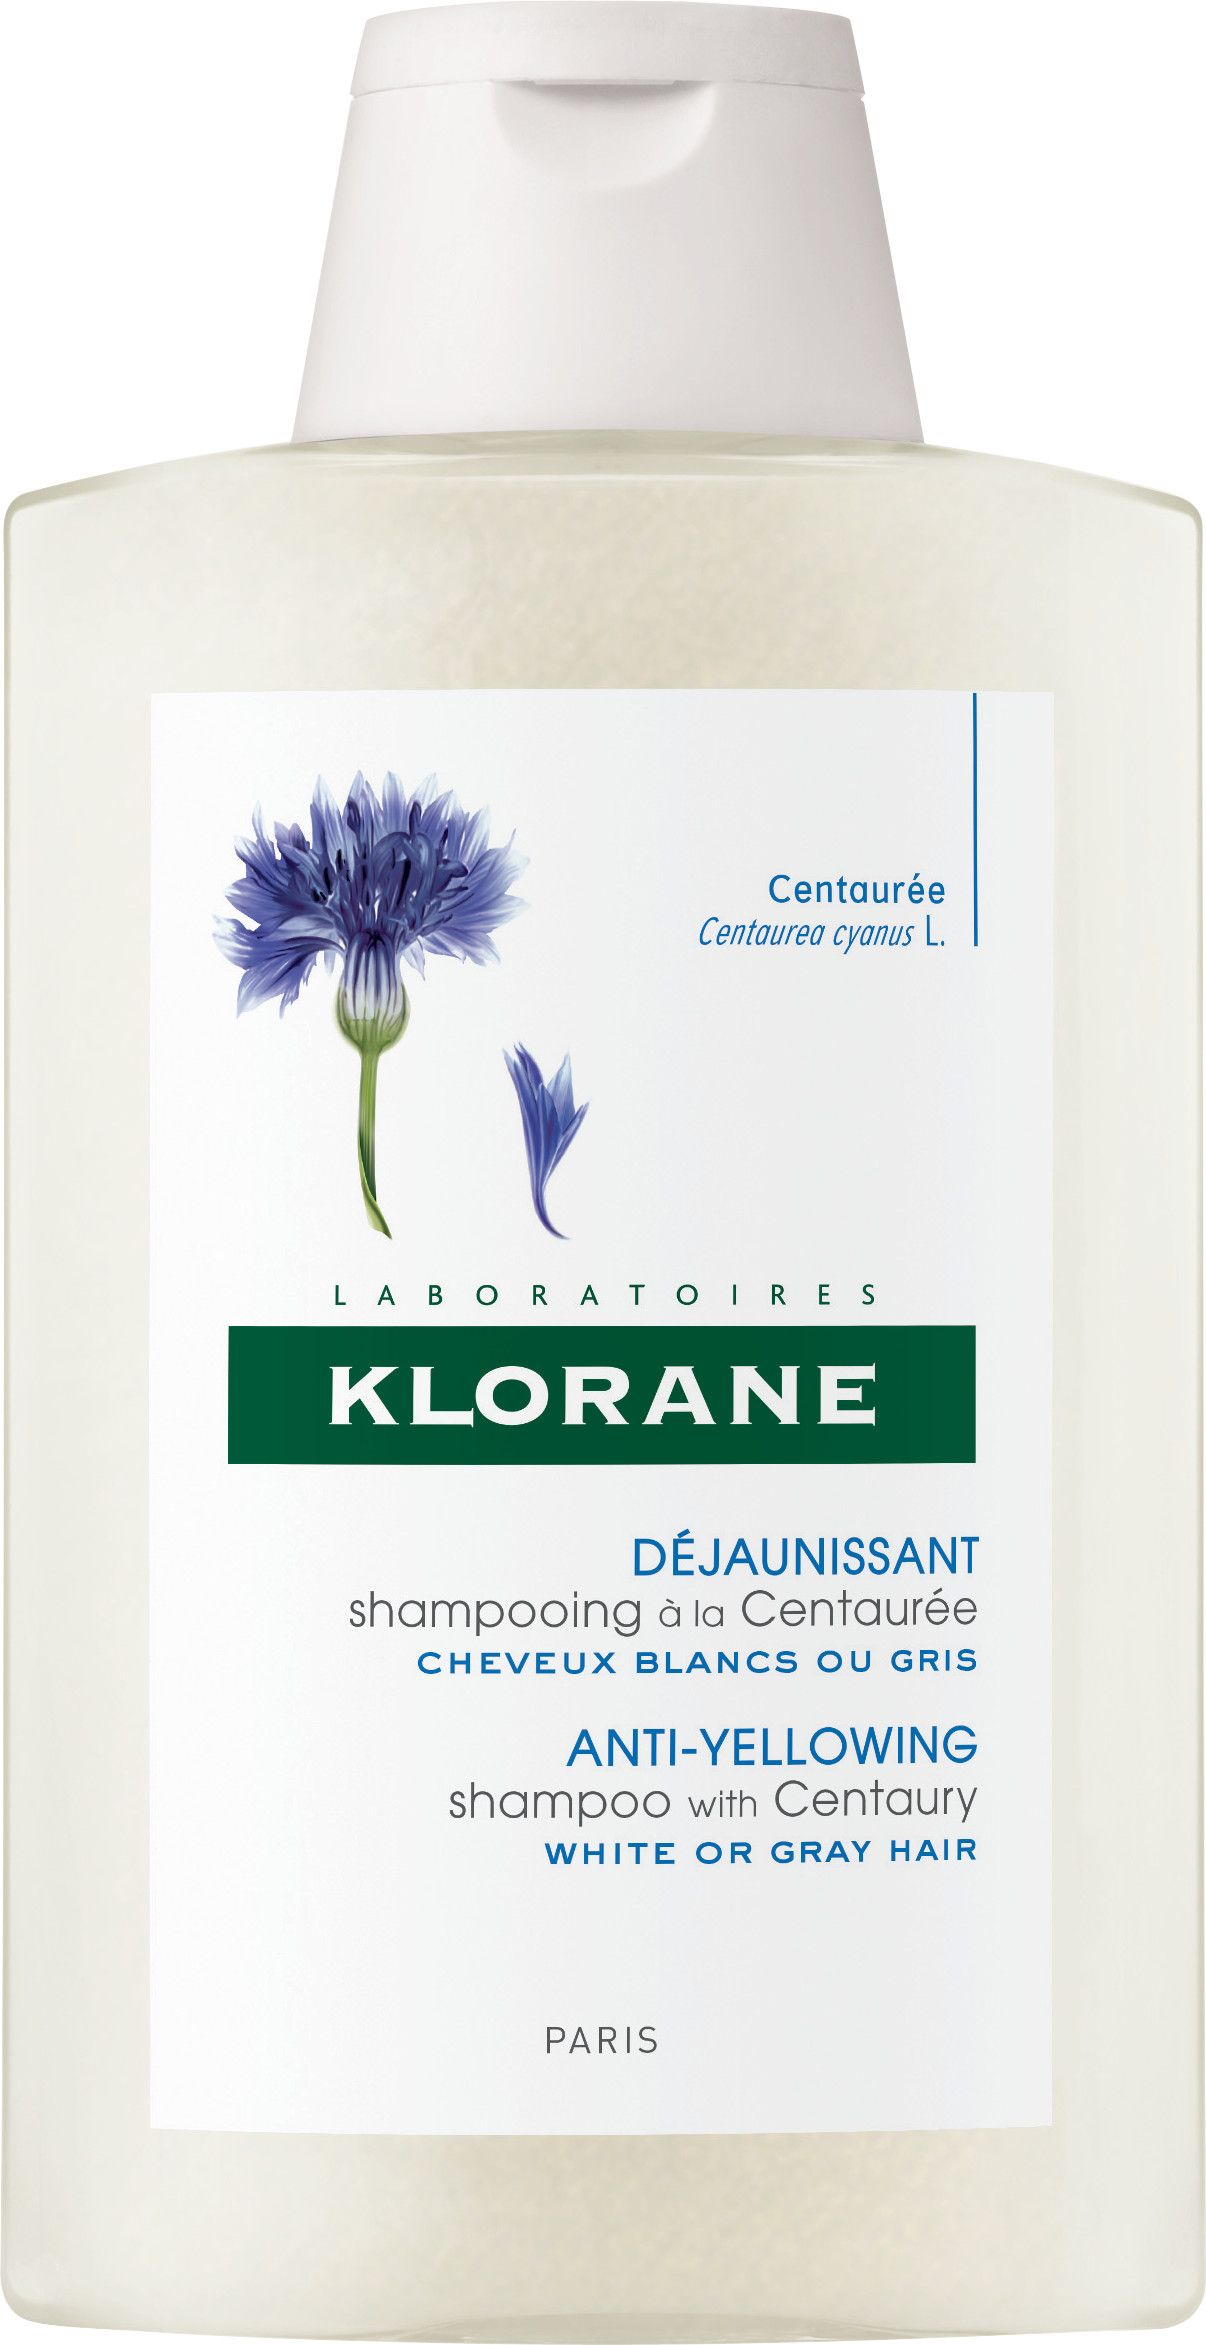 Klorane Anti Yellowing Shampoo With Centaury Extract For White Grey Hair 200ml Shampoo Grey Hair Grey White Hair